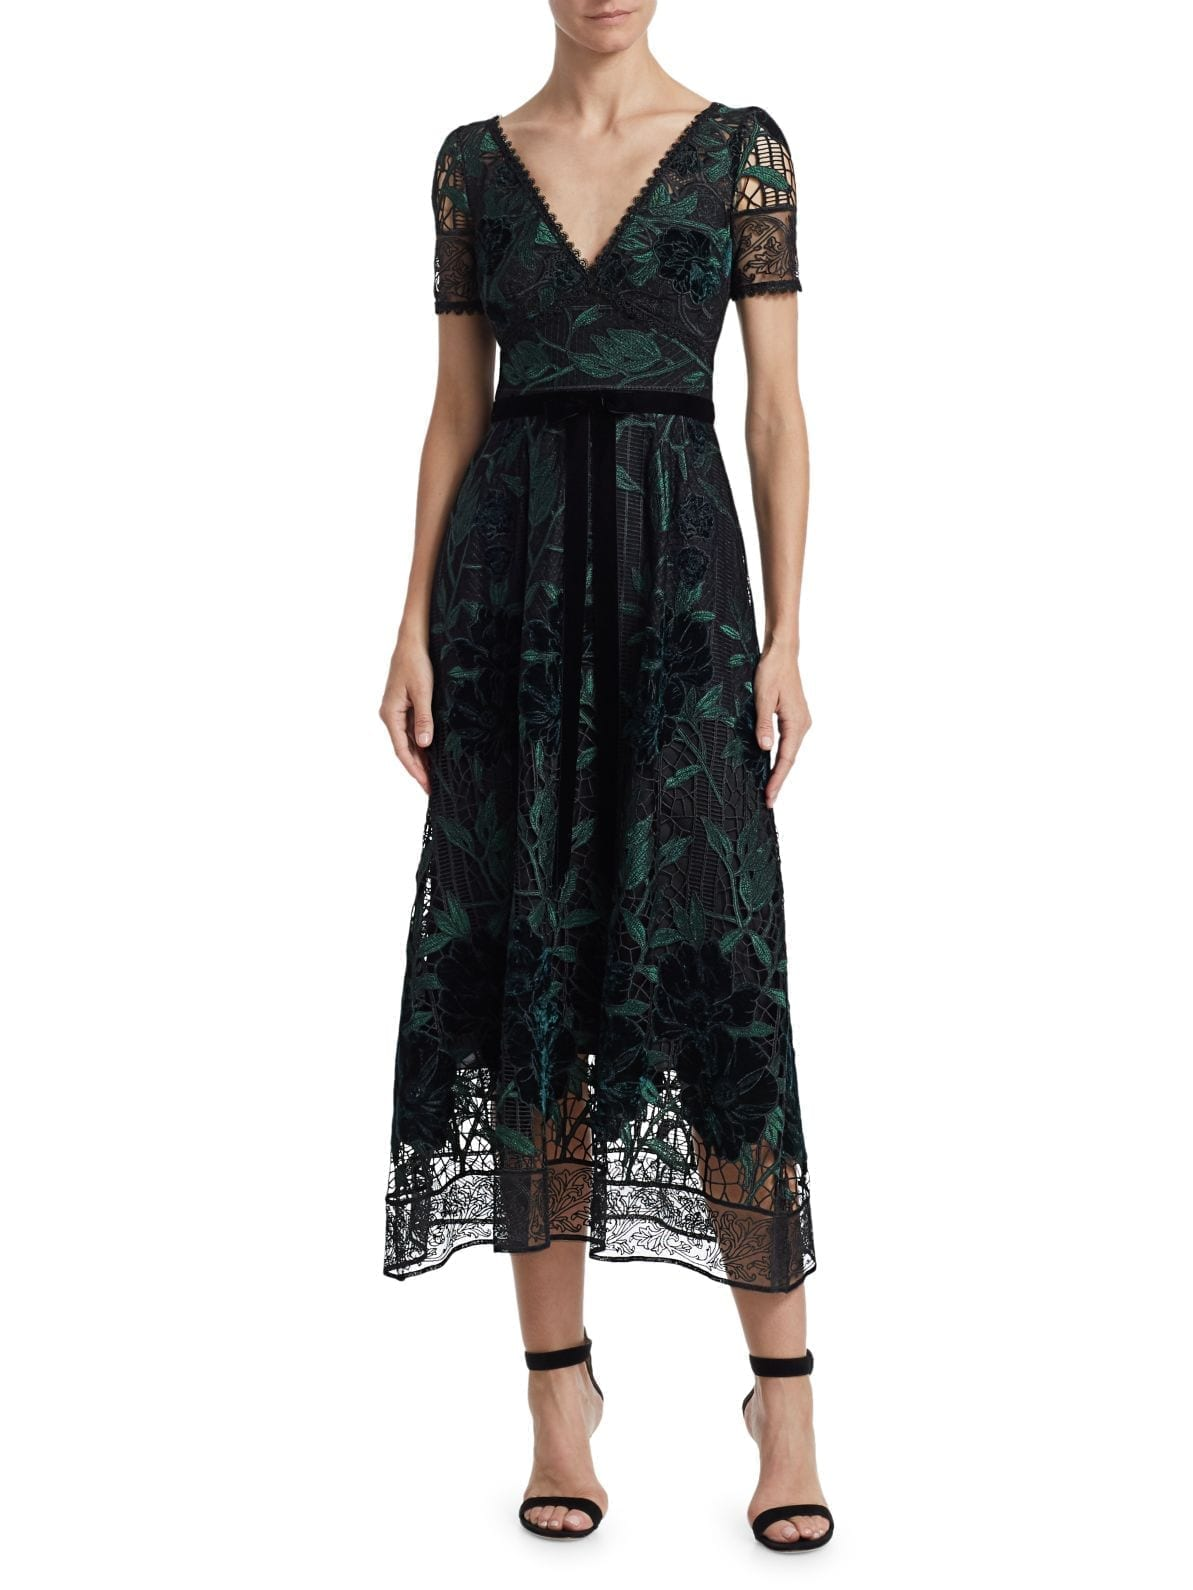 MARCHESA NOTTE Embroidered Velvet & Lace Cocktail Dress